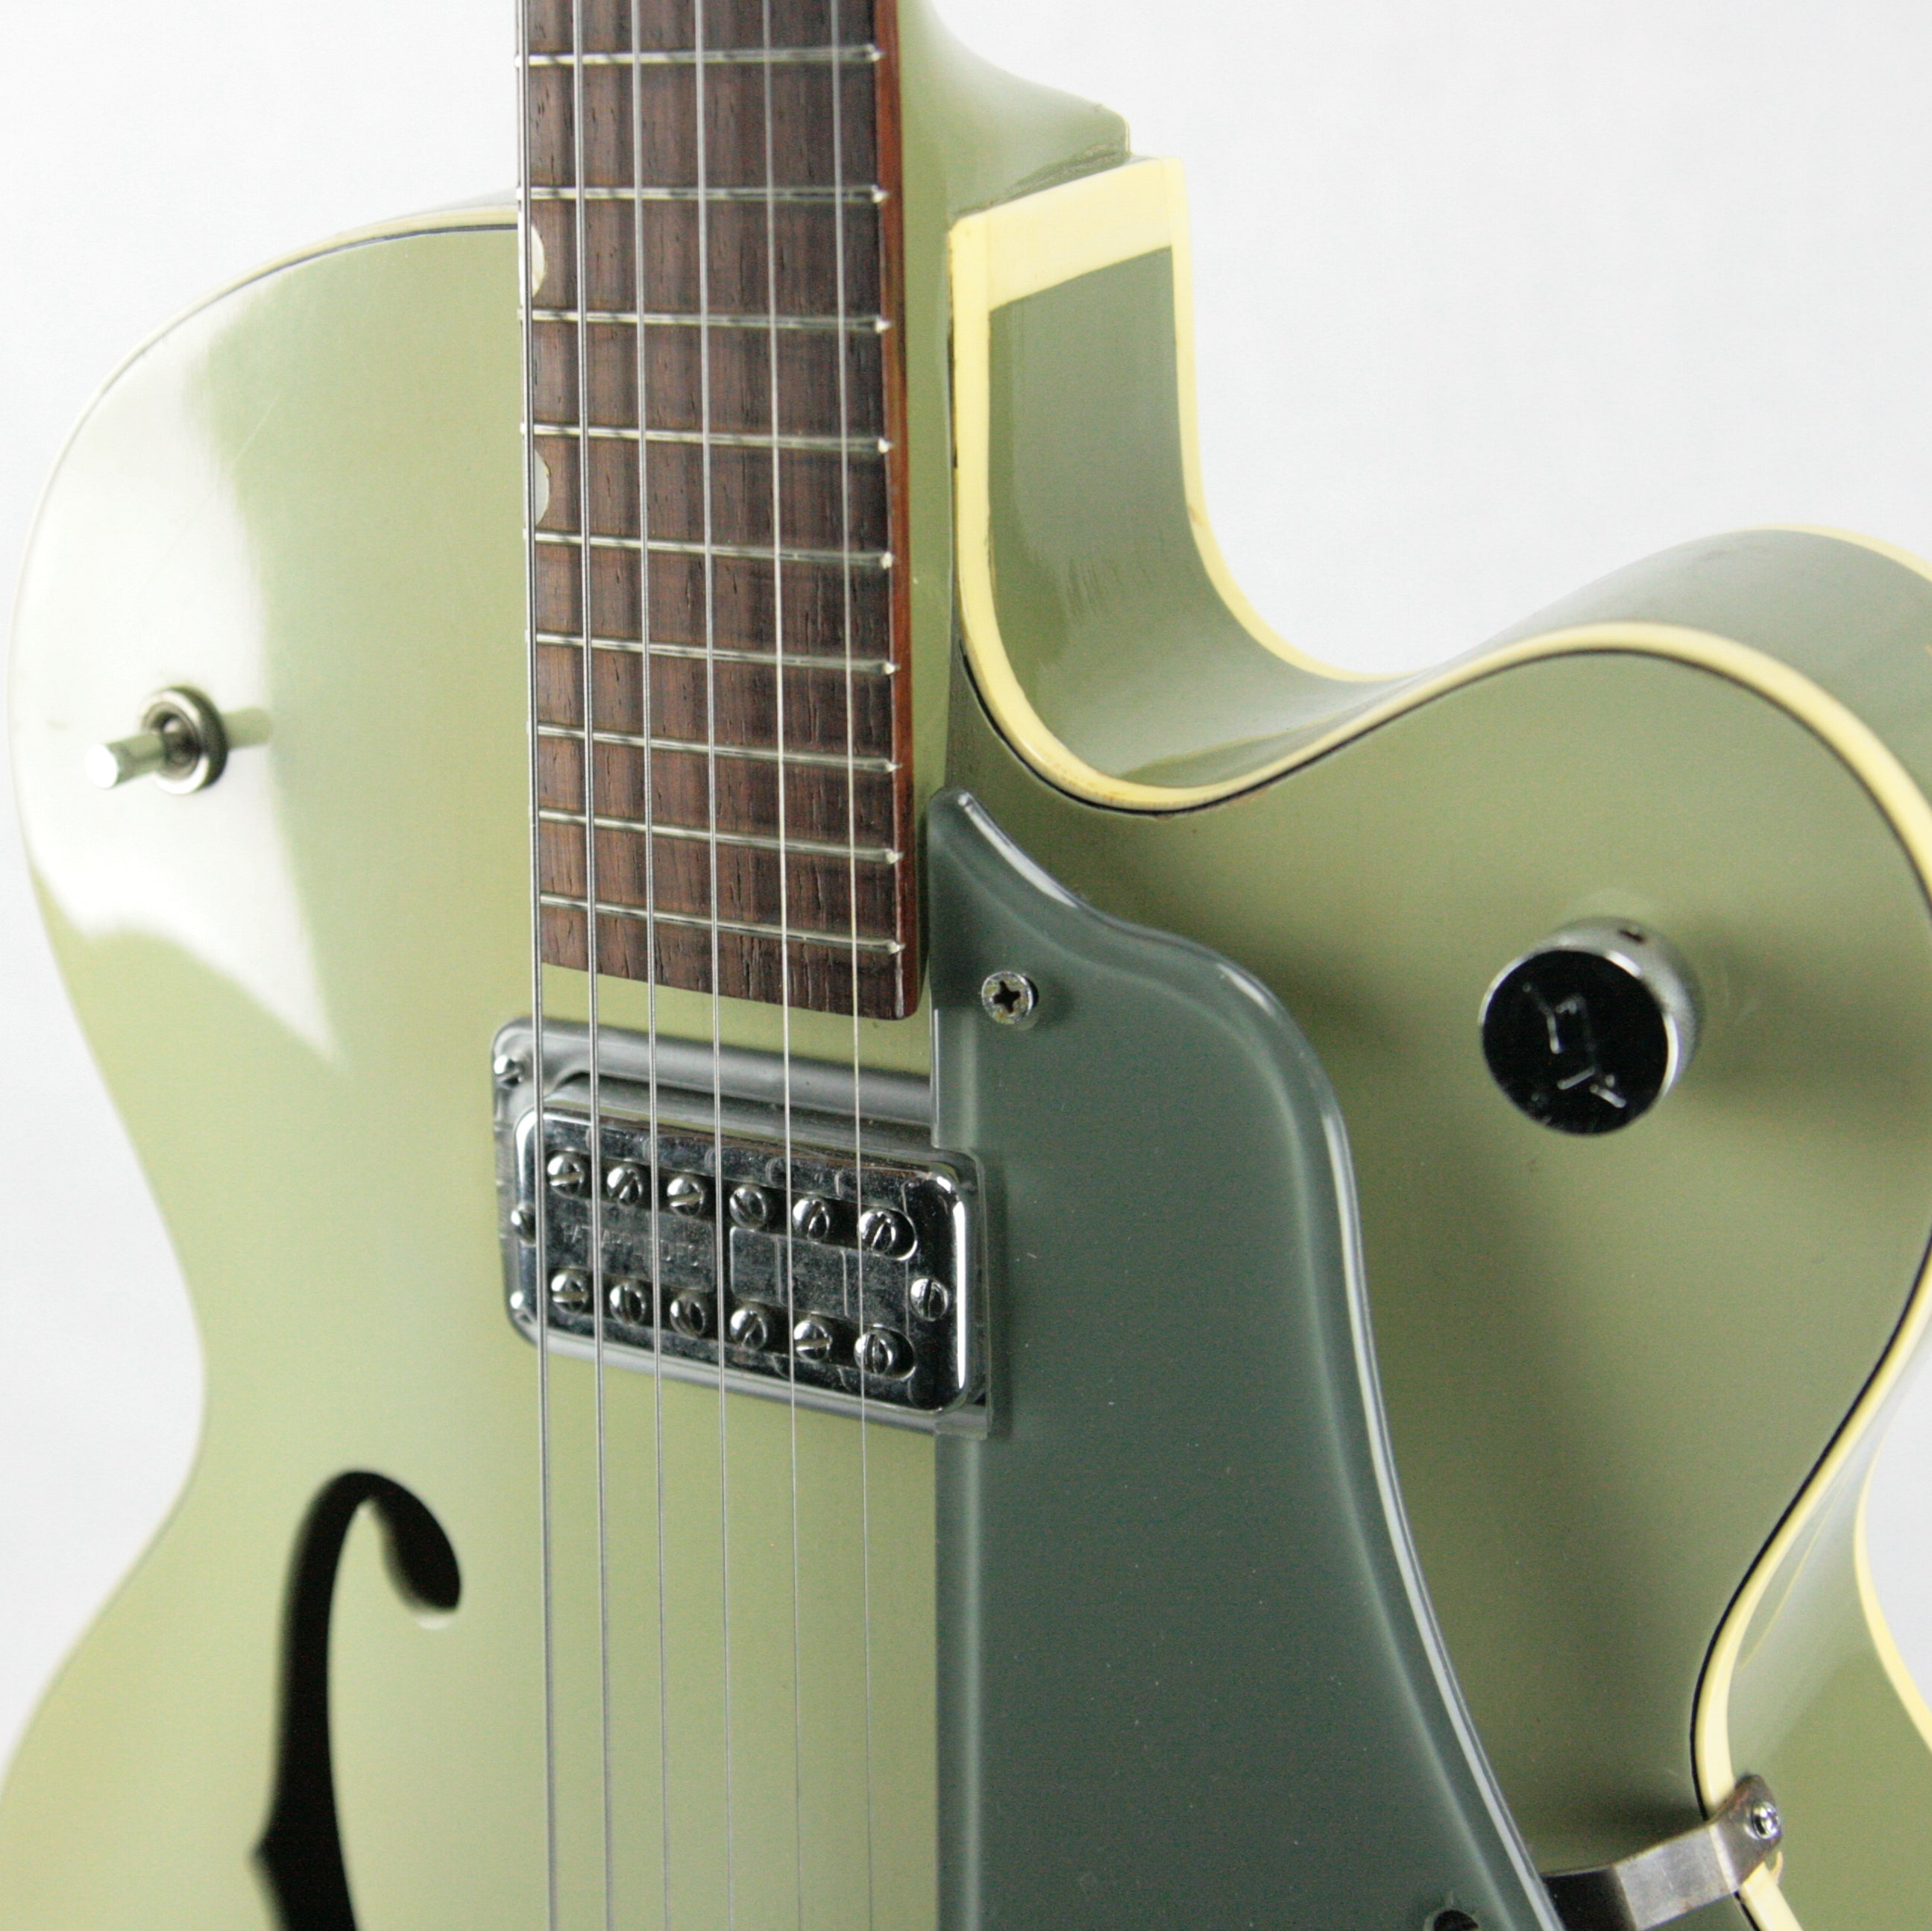 c. 1959 Gretsch 6125 Anniversary Two-Tone SMOKE GREEN w/ PAF Filtertron! Trestle-Bracing!